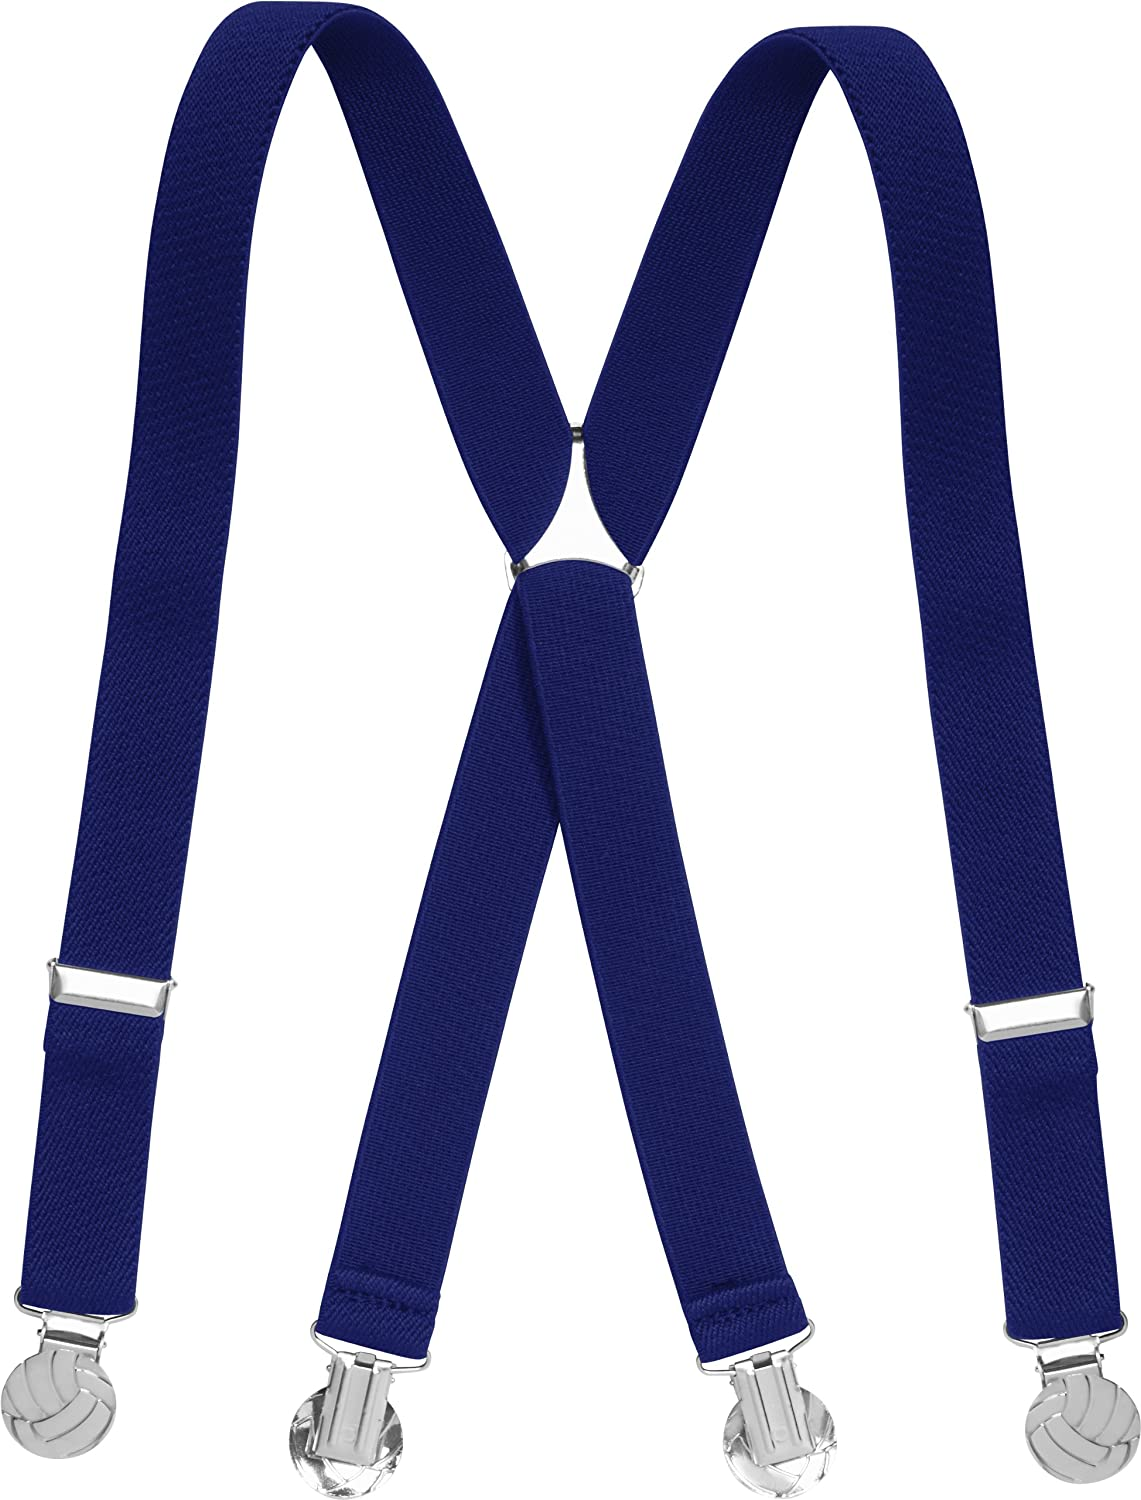 Playshoes Boy'S Kids Fully Adjustable Elasticated Suspenders with Football Clips Braces 603010 Modische Hosenträger